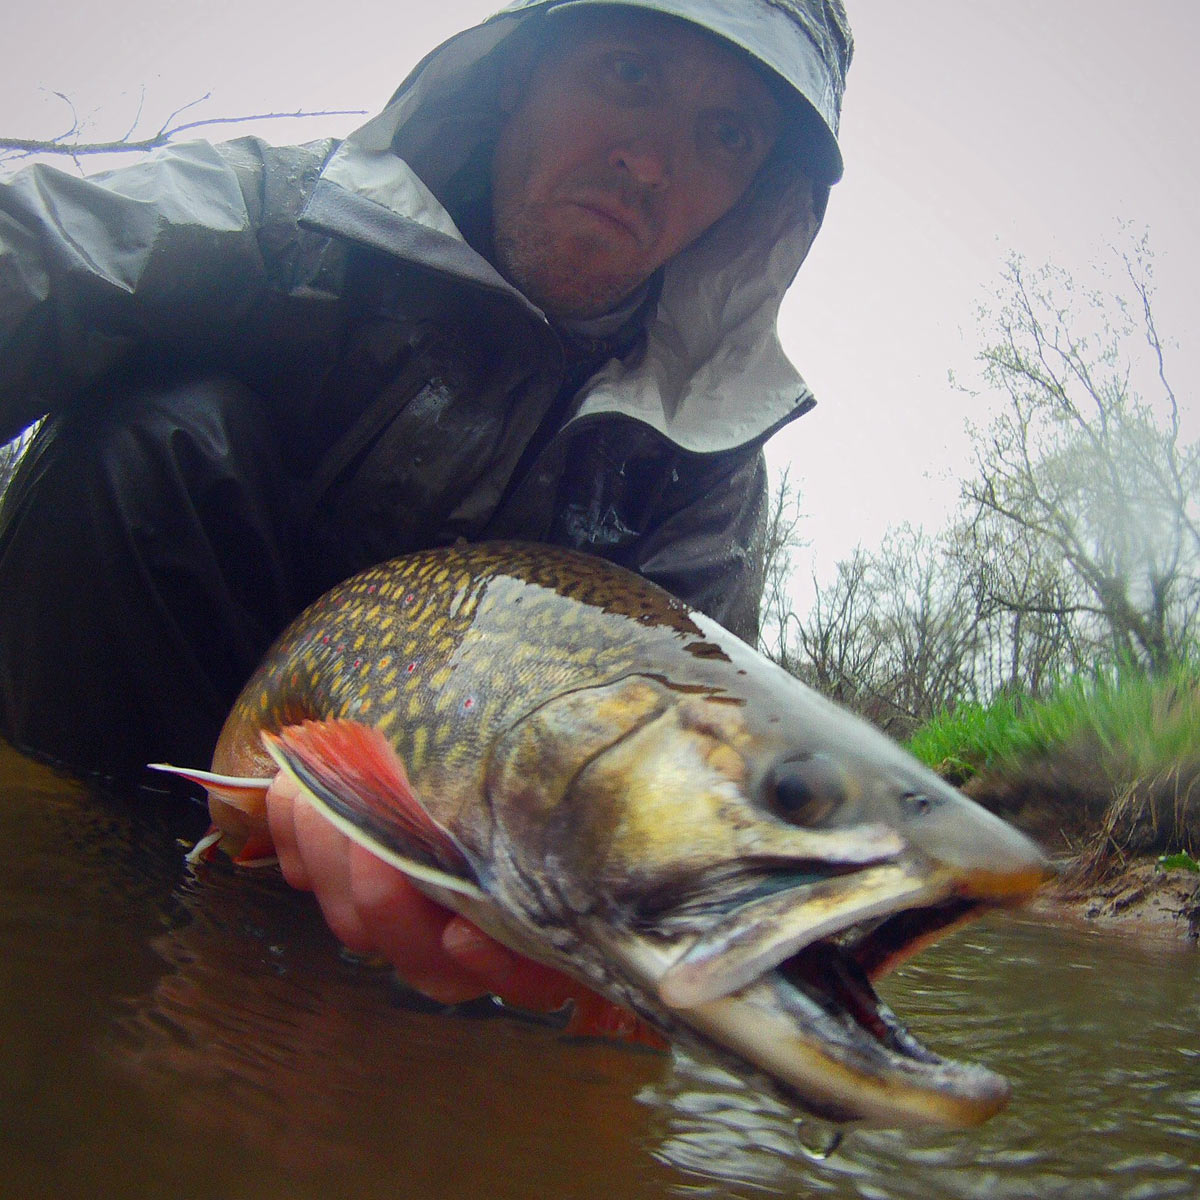 adrift_fly_fishing_labor_graphic_design_minneapolis_andy_weaverling_driftless_big_brook_trout_04e